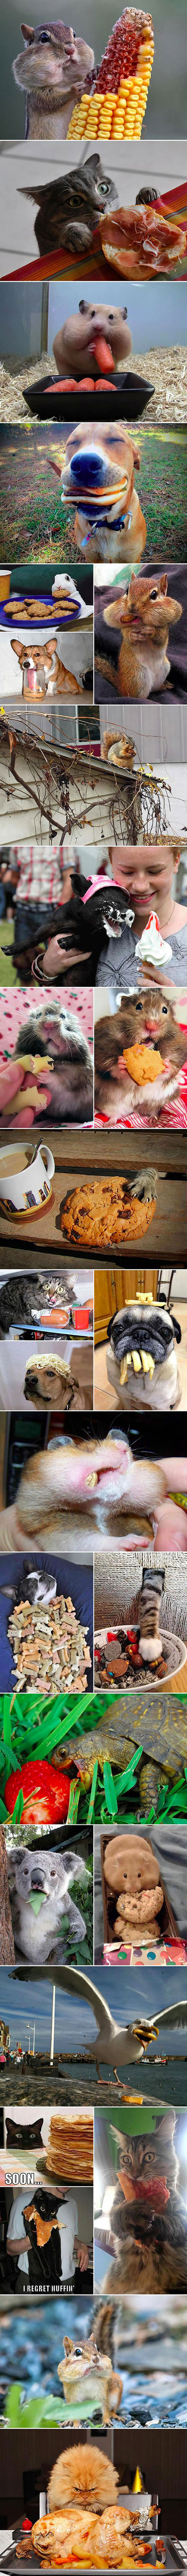 Animals that have already given up on their new year's diets ...